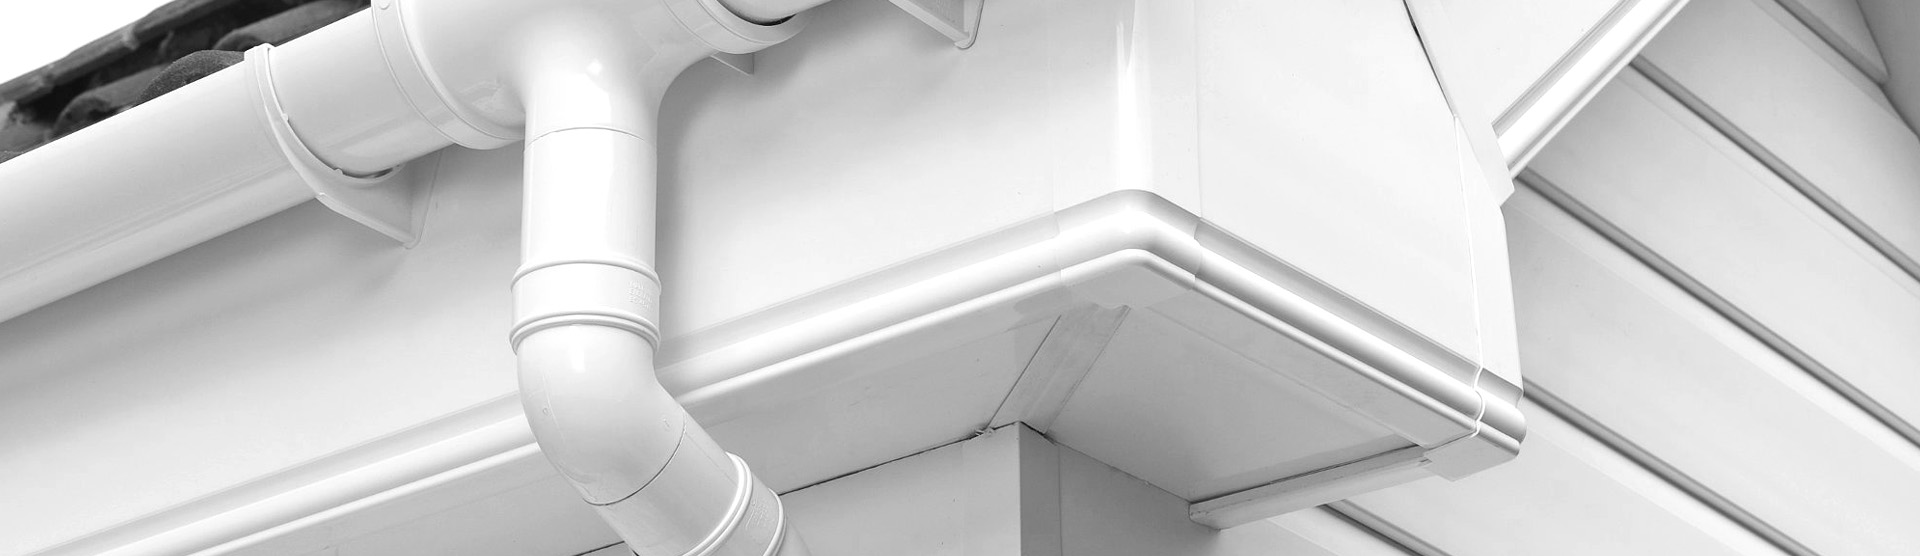 Background Slideshow Image showing Fascias, Soffits, Drainage and Cladding products